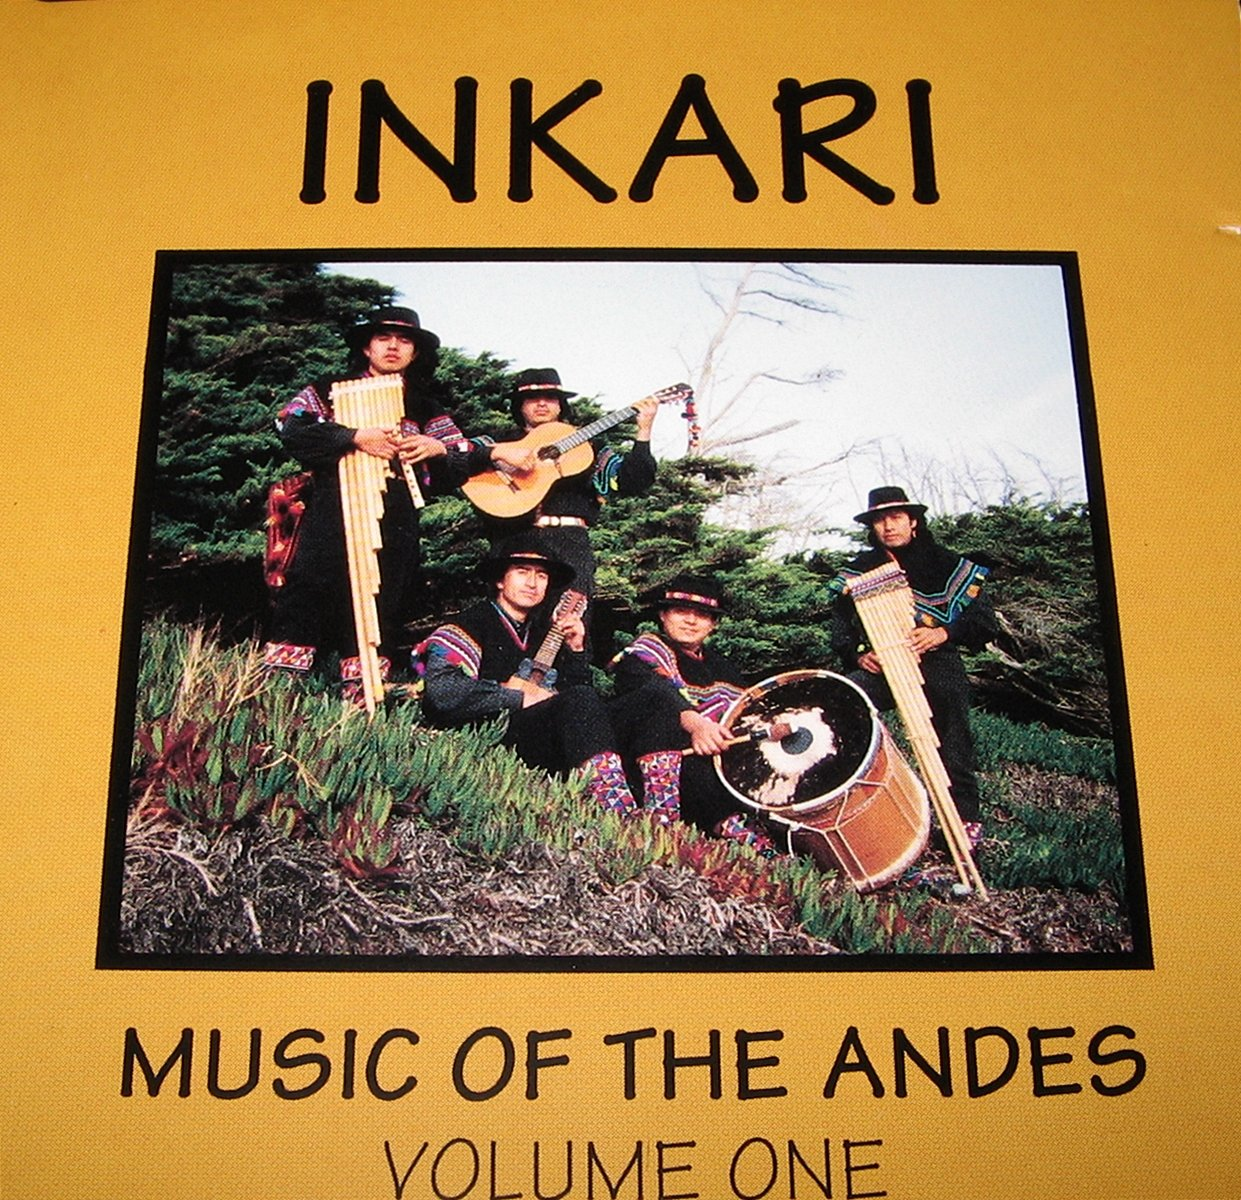 Music Of The Andes Vol 1